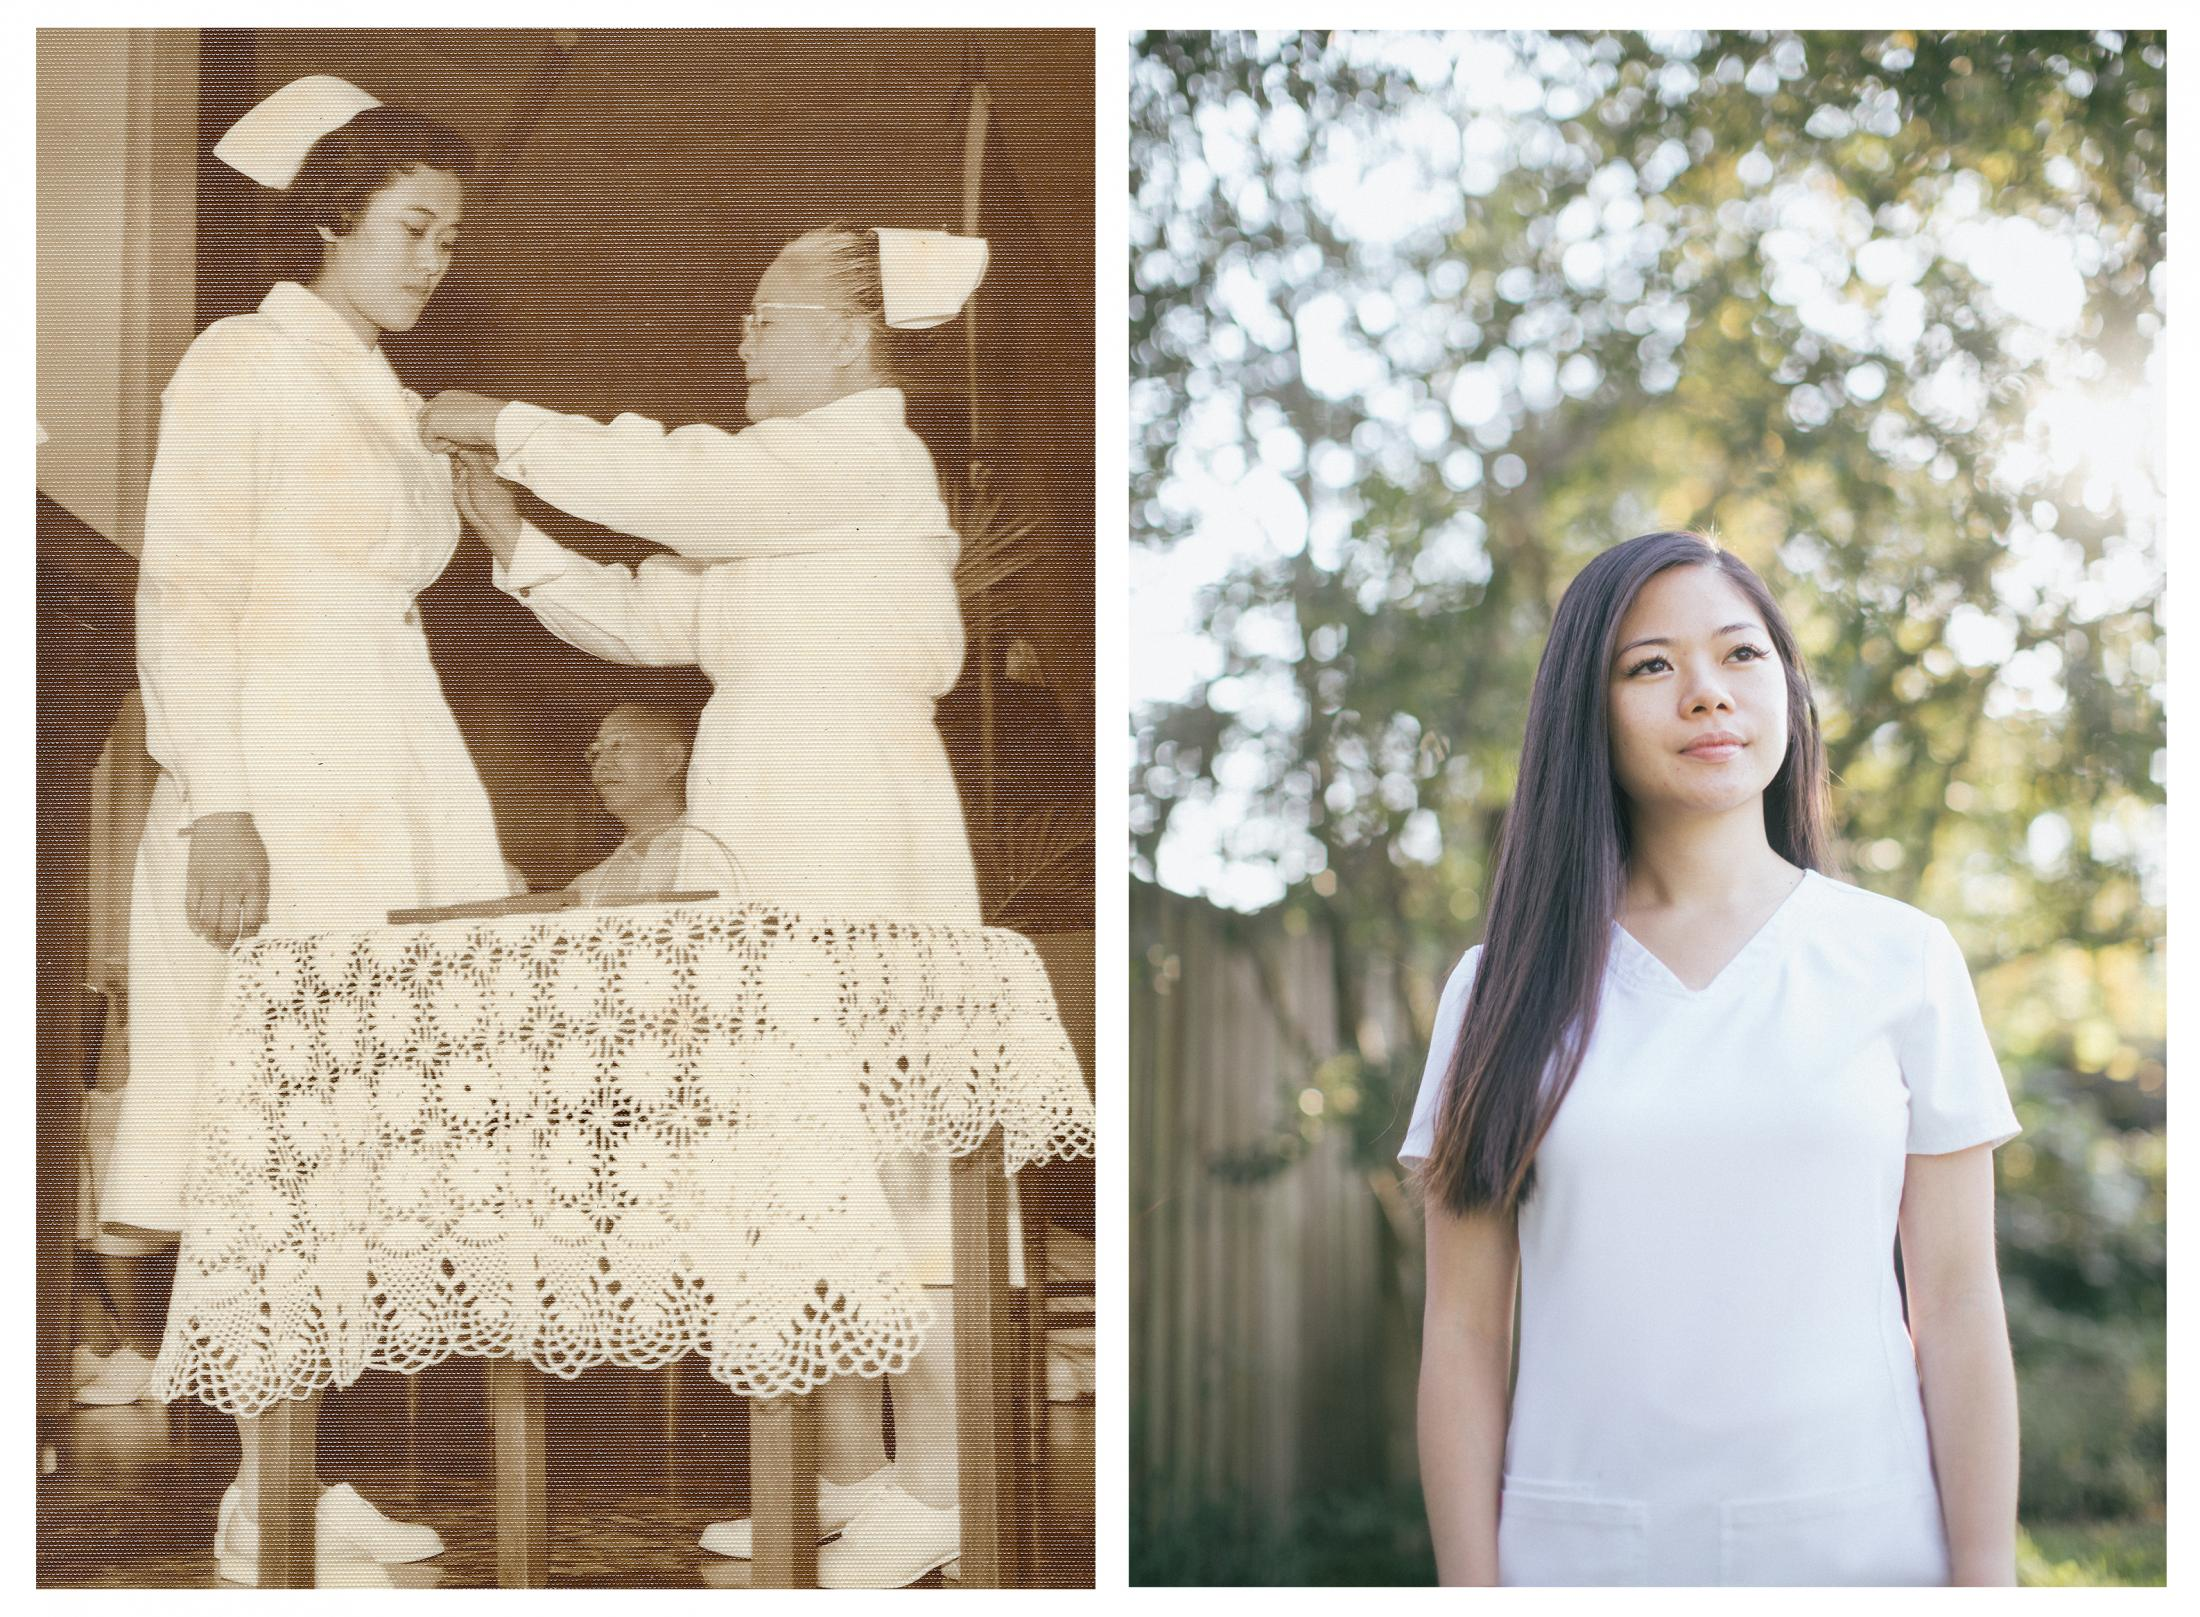 """Left: On April 1959, Araceli Teodoro [Marcial] received her pin from the Chinese General Hospital in Manila for finishing her nursing degree. The pinning ceremony has become a time-honored tradition since 1916 in the United States and United Kingdom. Archival Image: Bjoring Center for Nursing Historical Inquiry Right: """"I was so excited to attend my graduation,"""" says Elizabeth Grace Capadngan, a Filipino telemetry nurse at Doctors Community Medical Center, in Maryland. Elizabeth Grace has been a practicing registered nurse for a few years. She finished her Bachelors degree in nursing in the spring of 2020. Due to the COVID-19 pandemic, she was unable to have her graduation ceremony."""